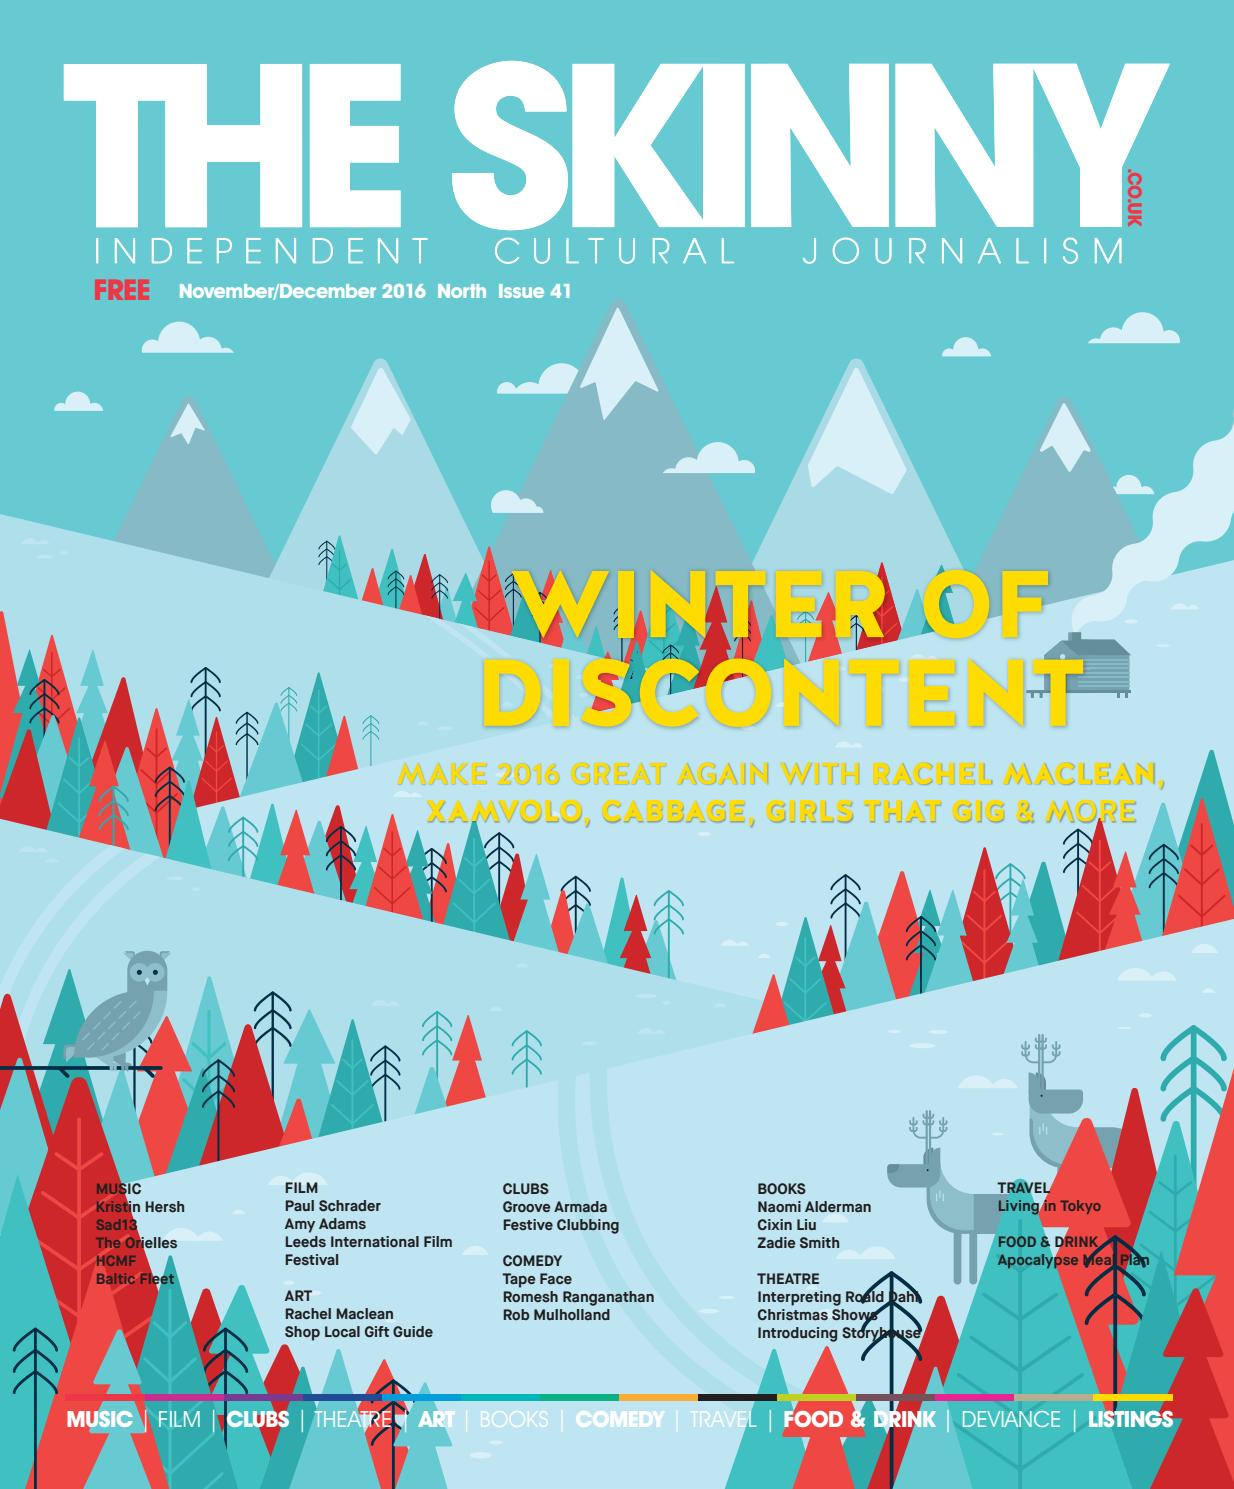 d1593a2c54 The Skinny North Nov Dec 2016 by The Skinny - issuu